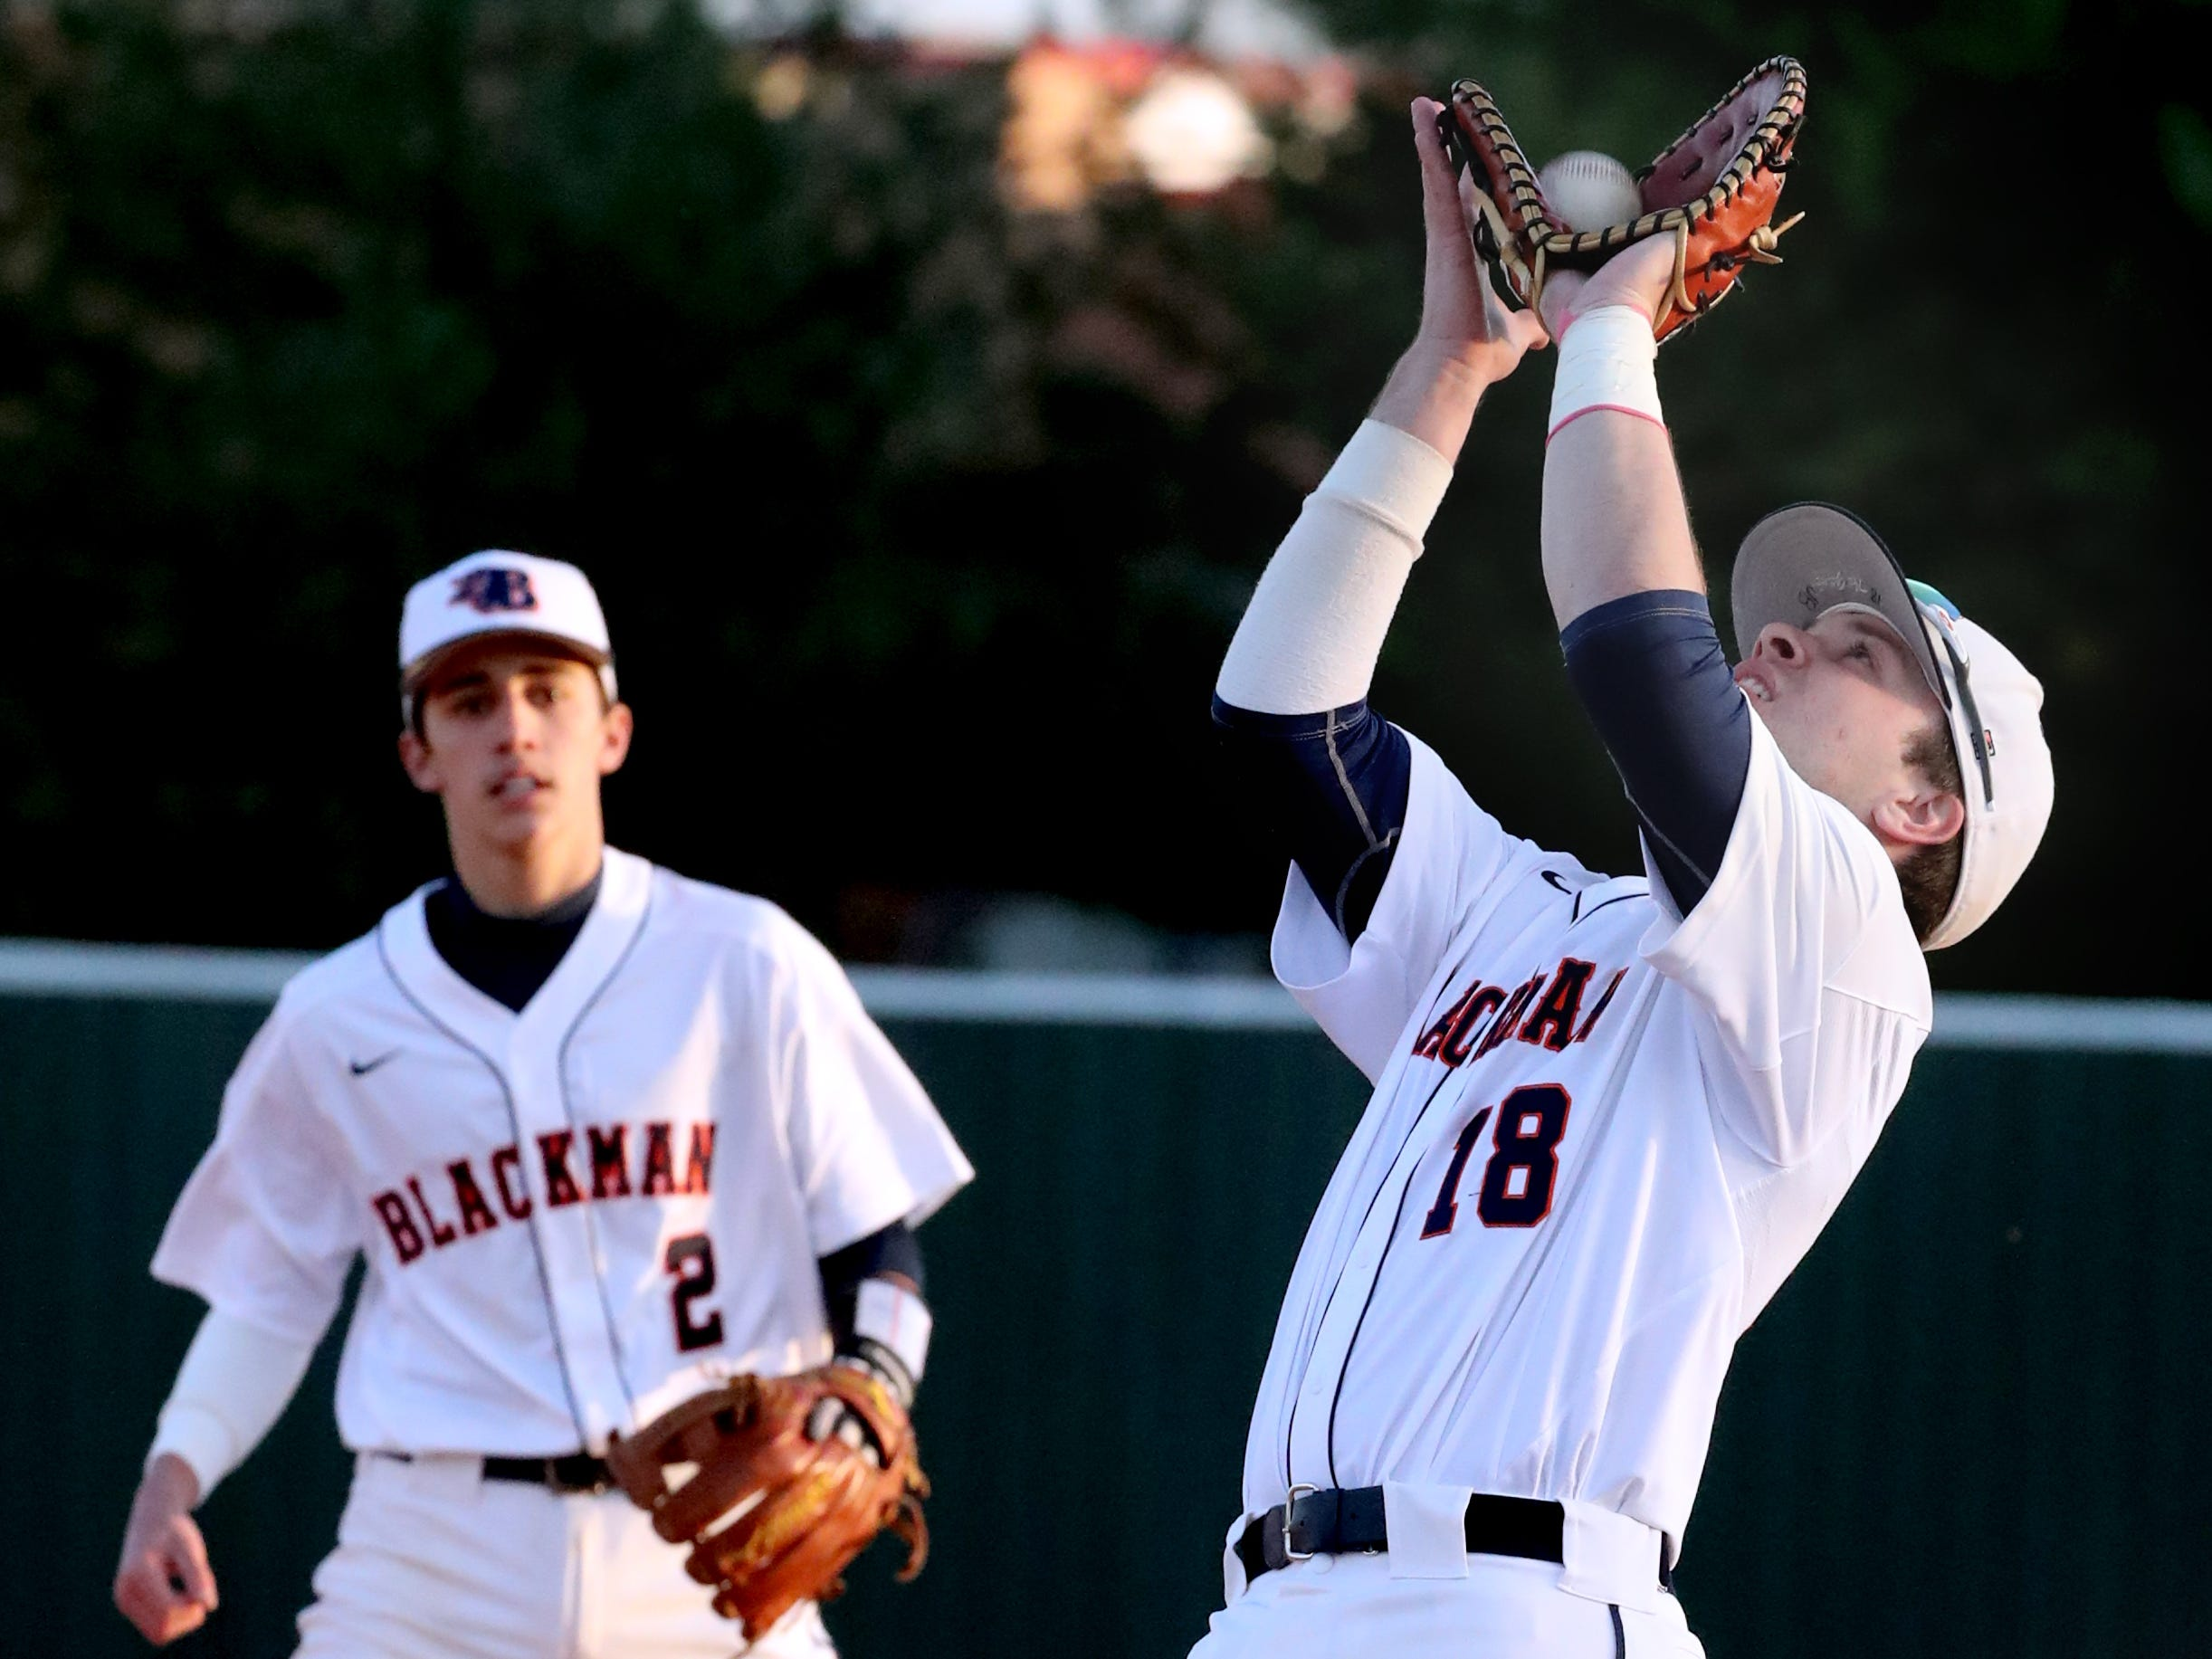 Blackman's Jon Blalock (18) makes a catch and an out as Blackman's Carter Warner (2) watches from the background during the game against Siegel, on Monday, March 11, 2019.